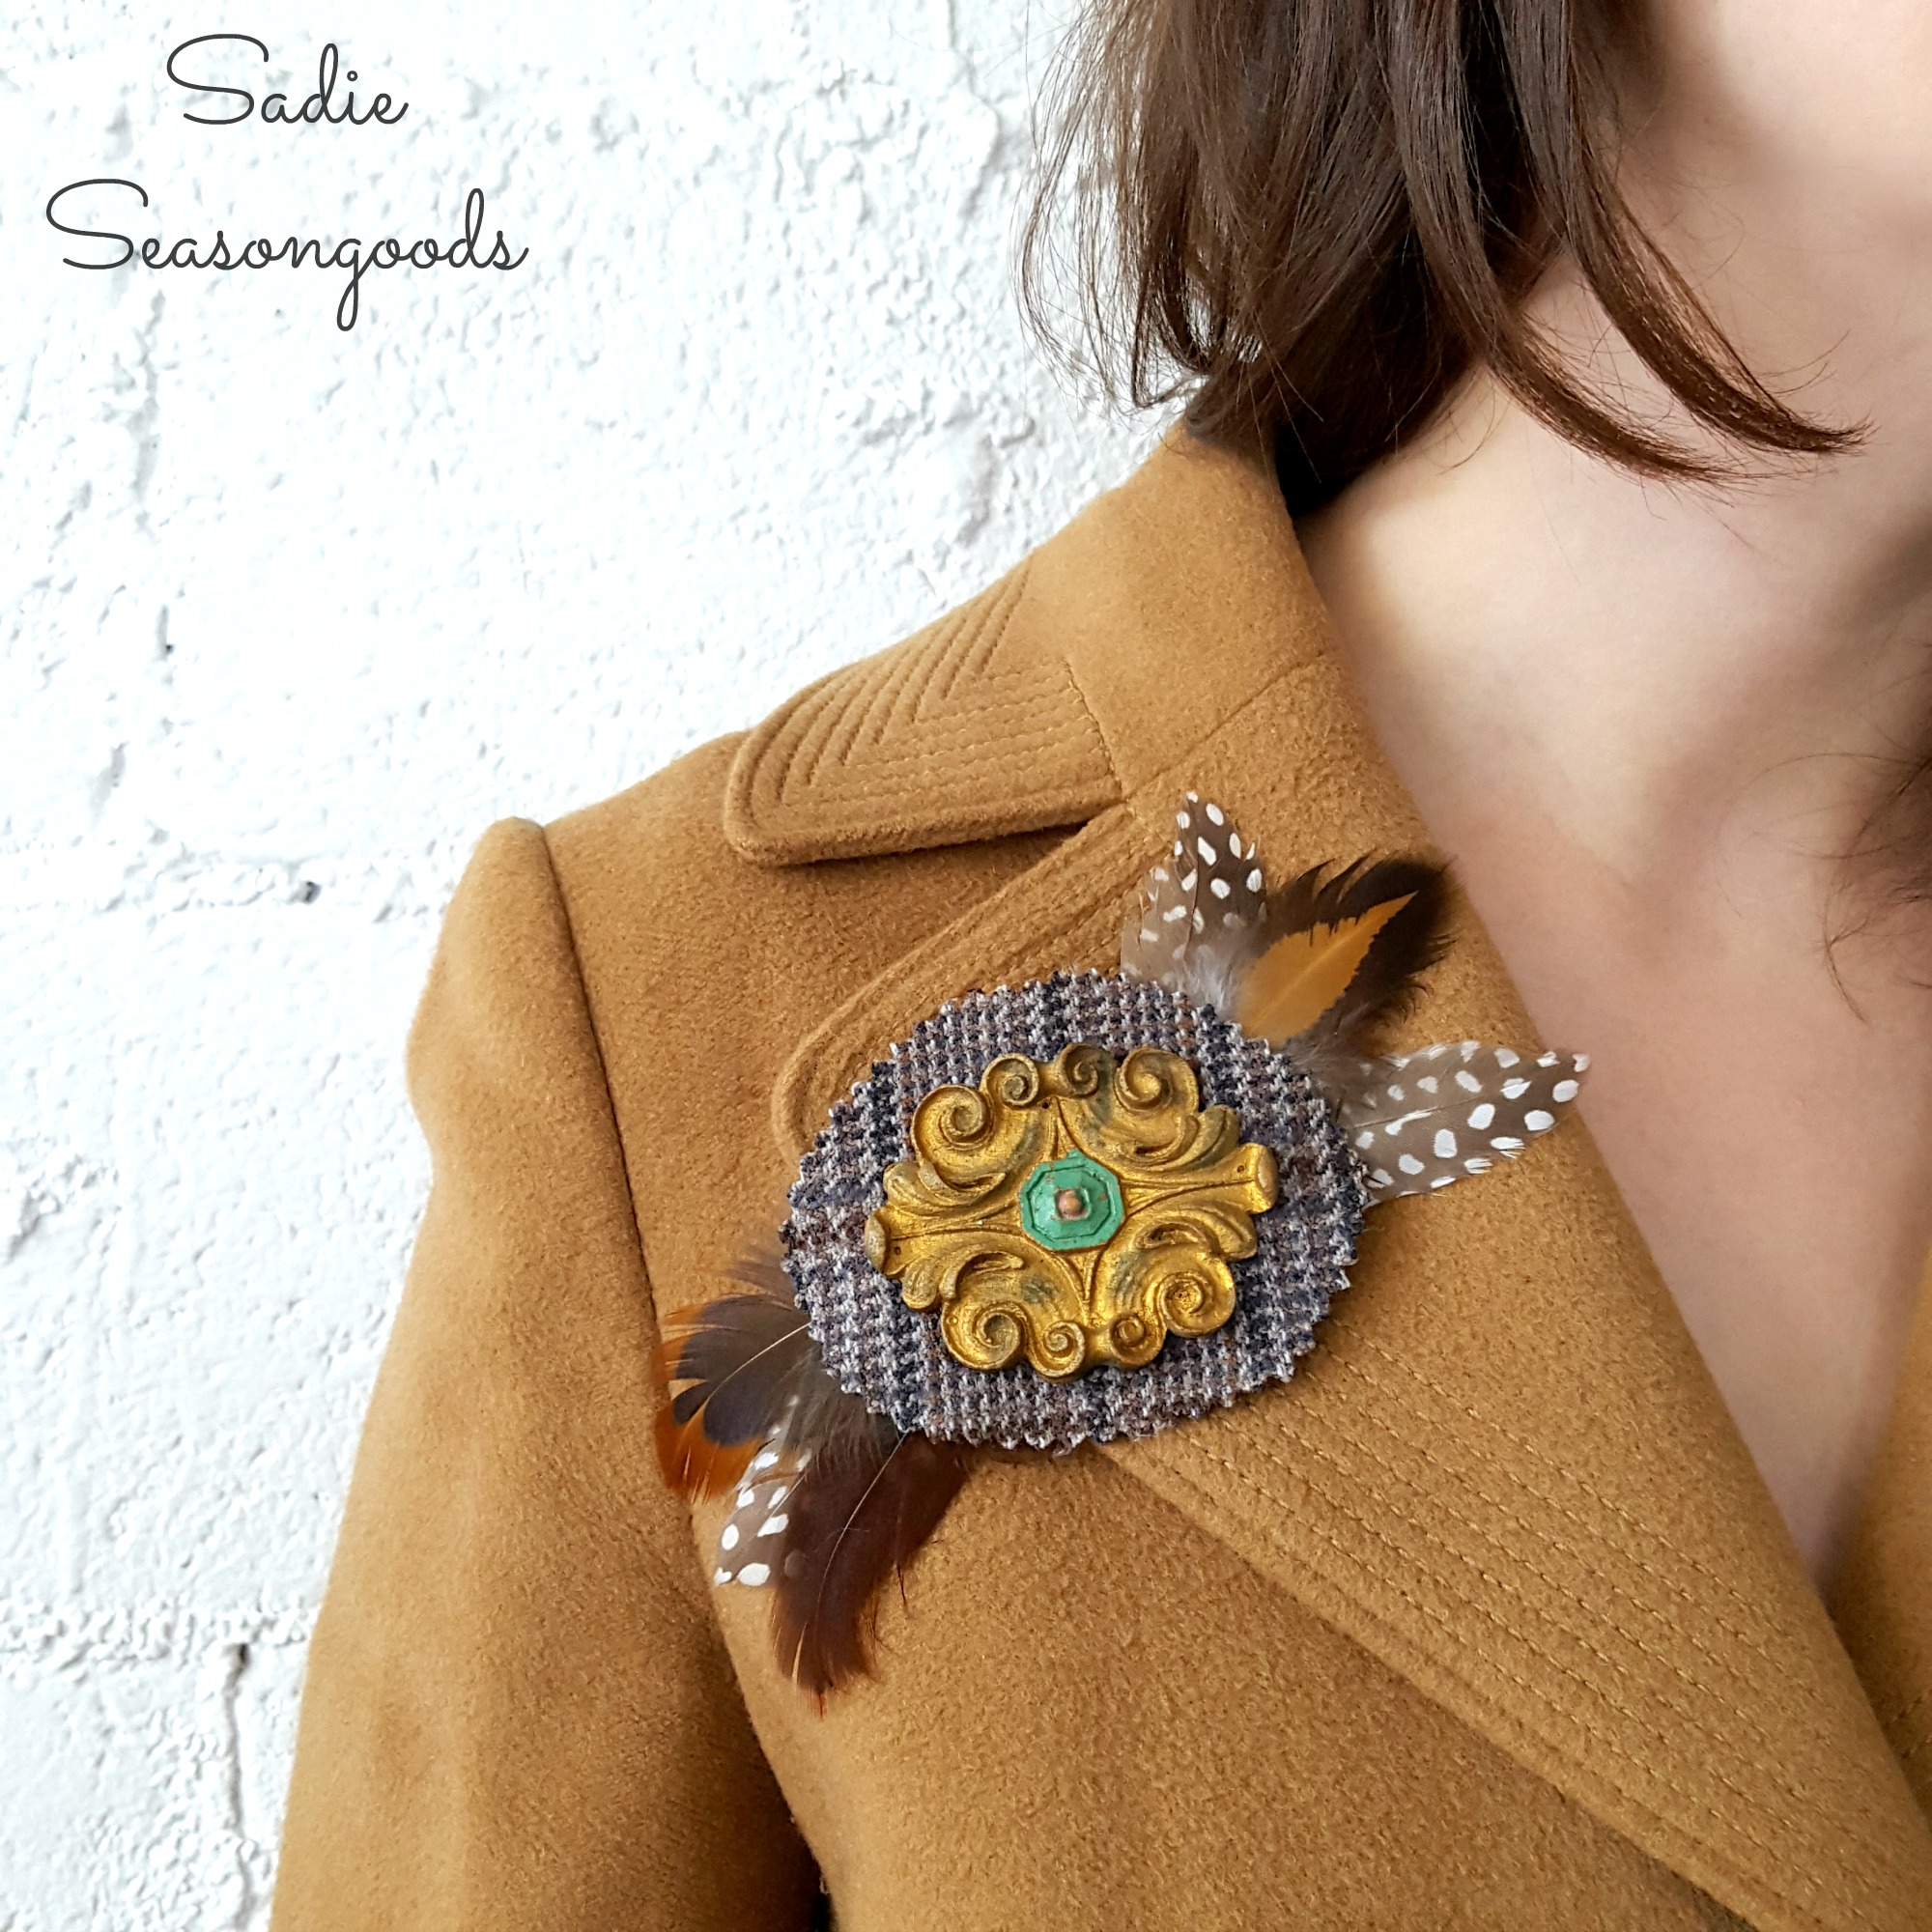 Salvage Couture: Reclaimed Furniture Appliqué Brooches, By Sadie Seasongoods, featured on Funky Junk Interiors